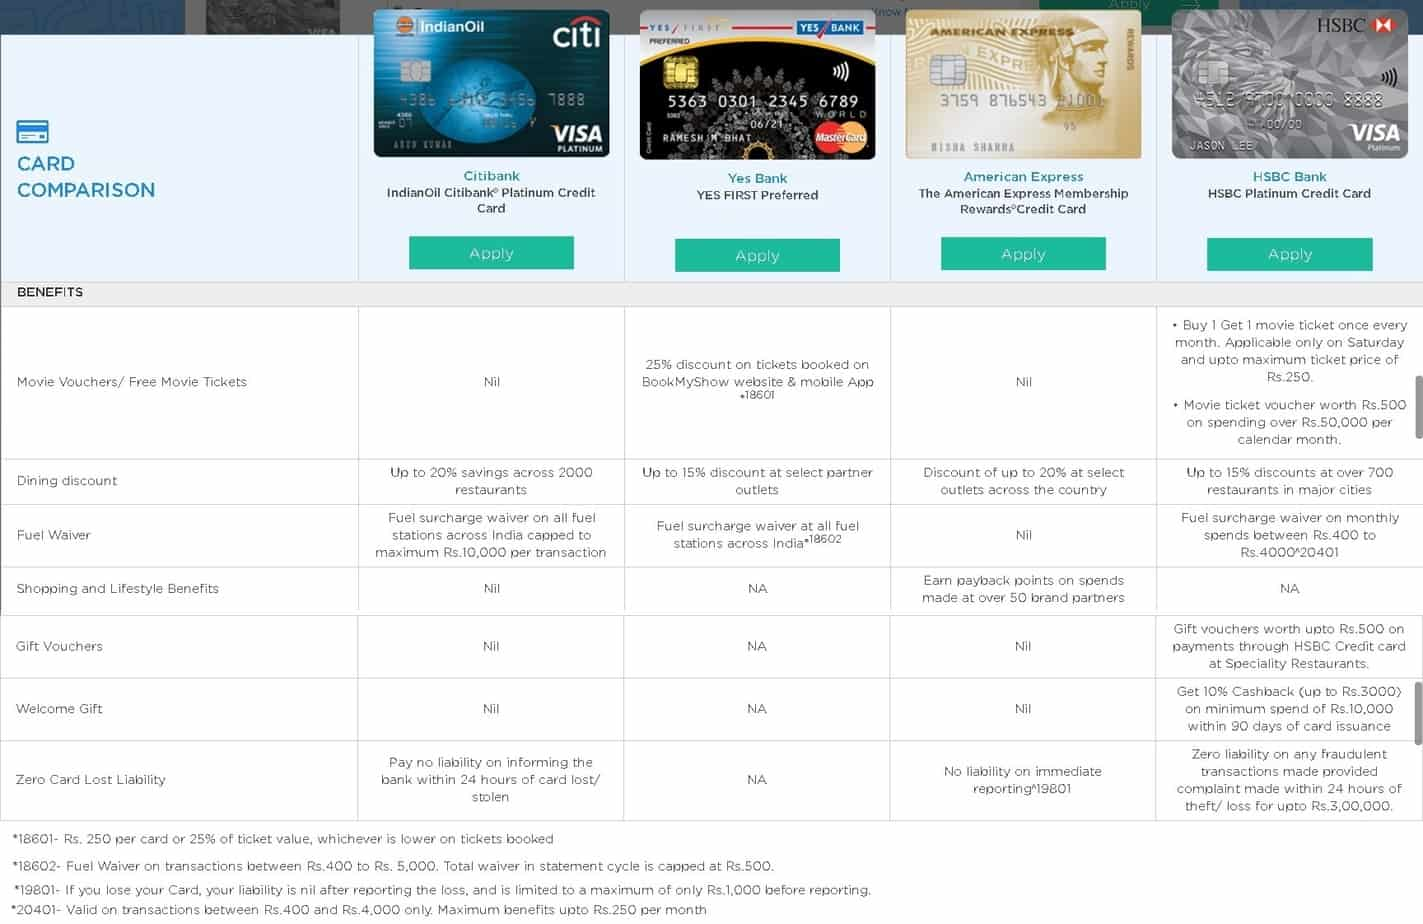 Credit Card Selection In India: card comparison chart part 3 showing benefits